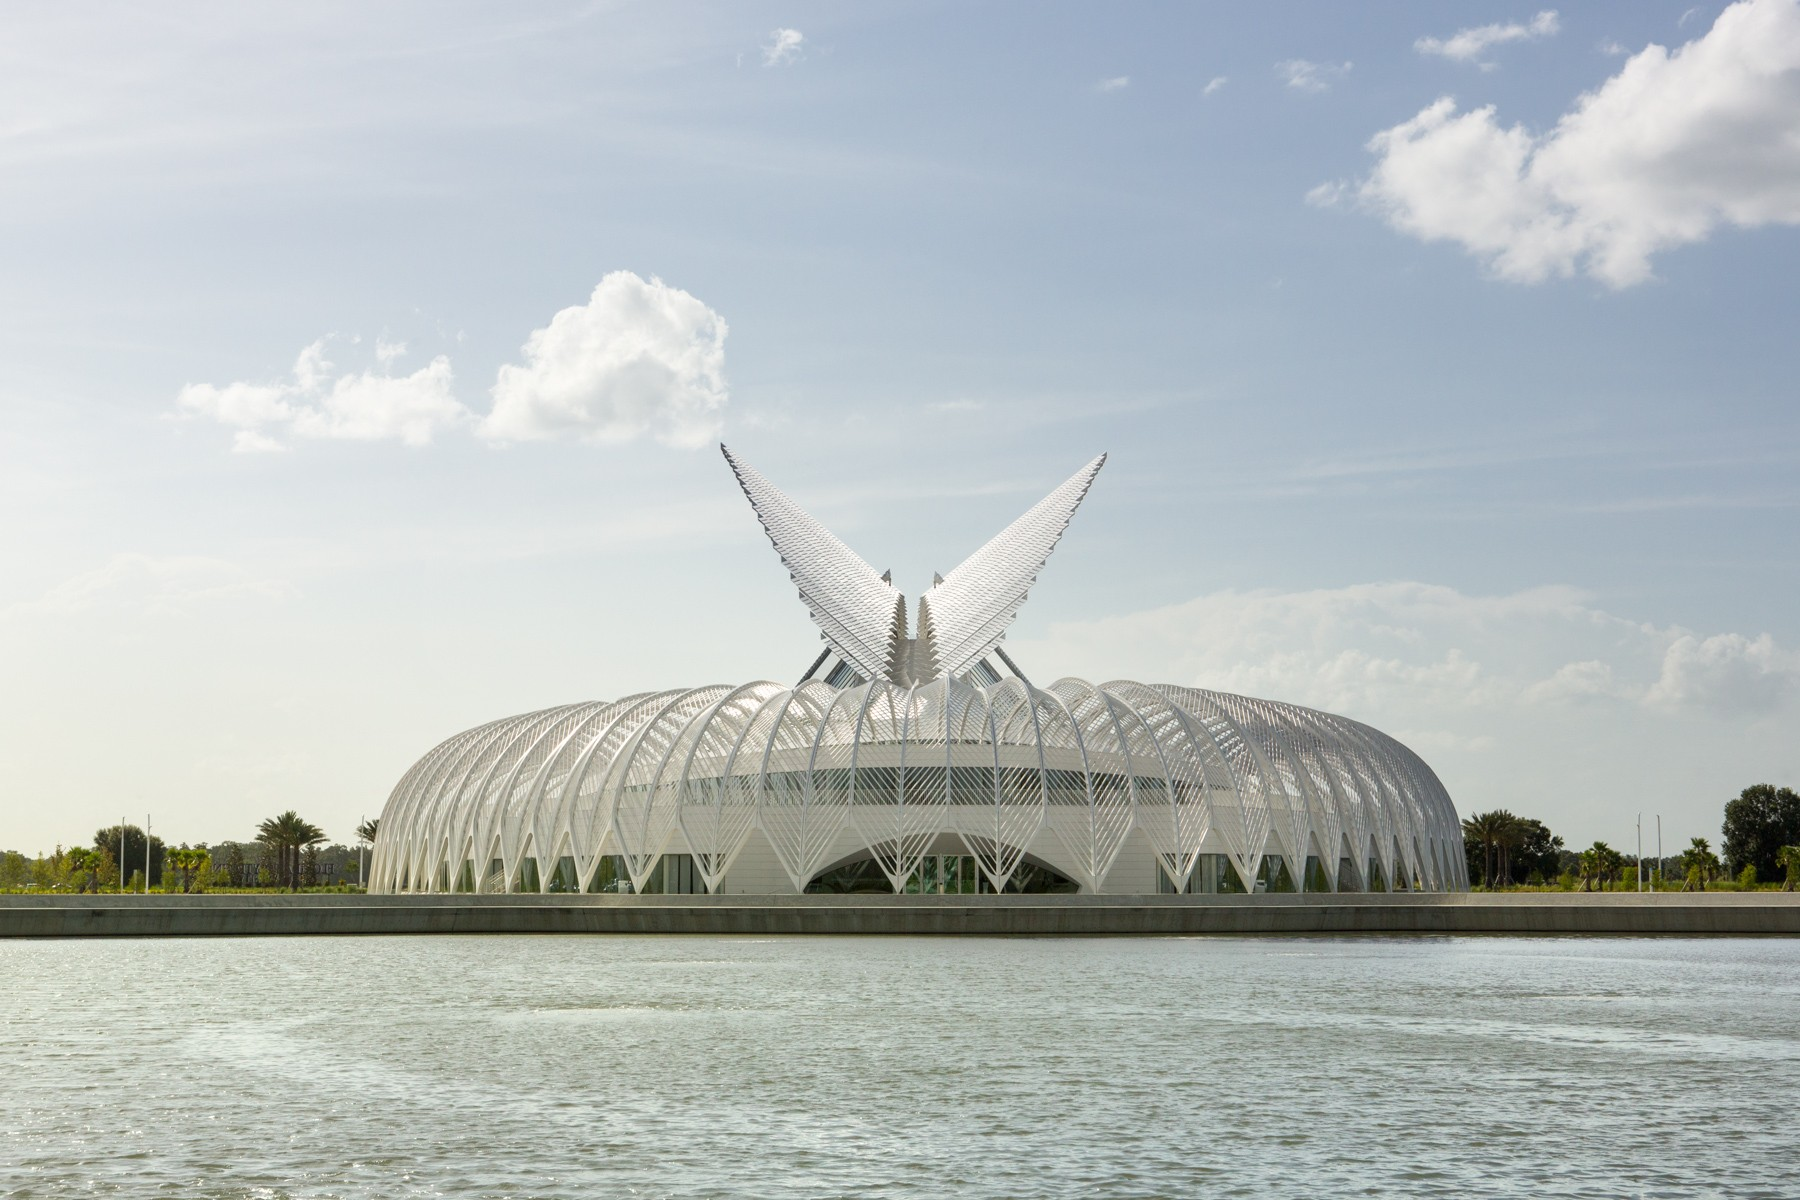 Architect Santiago Calatrava, Innovation, Science and Technology (IST) Building, Florida Polytechnic University